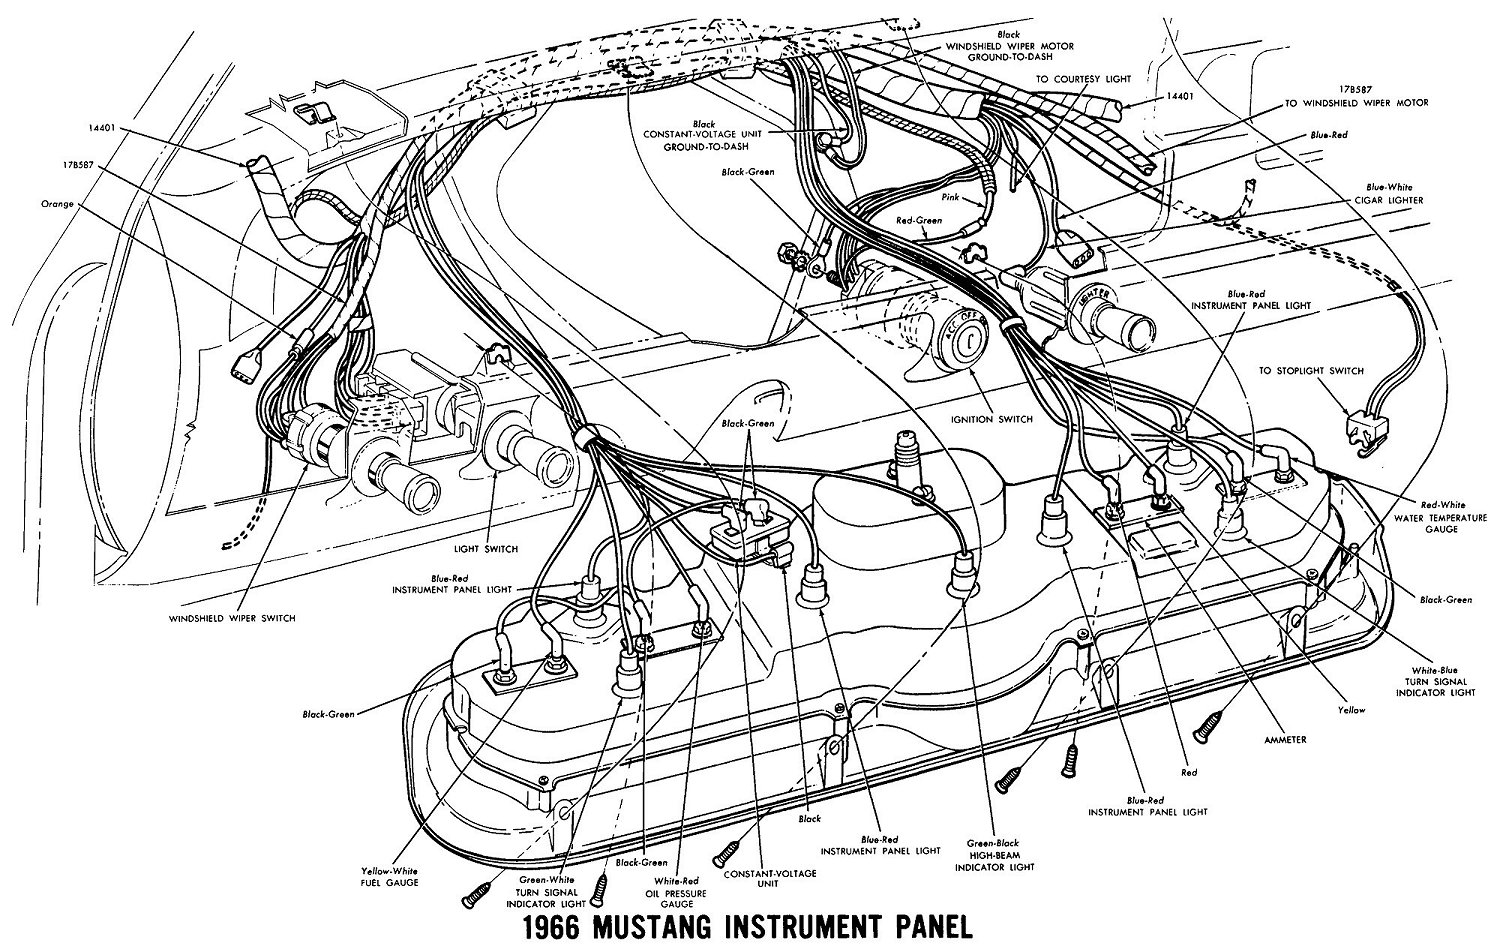 1966 Mustang Wiring Diagrams Average Joe Restoration L6 Engine Diagram Instrument Panel